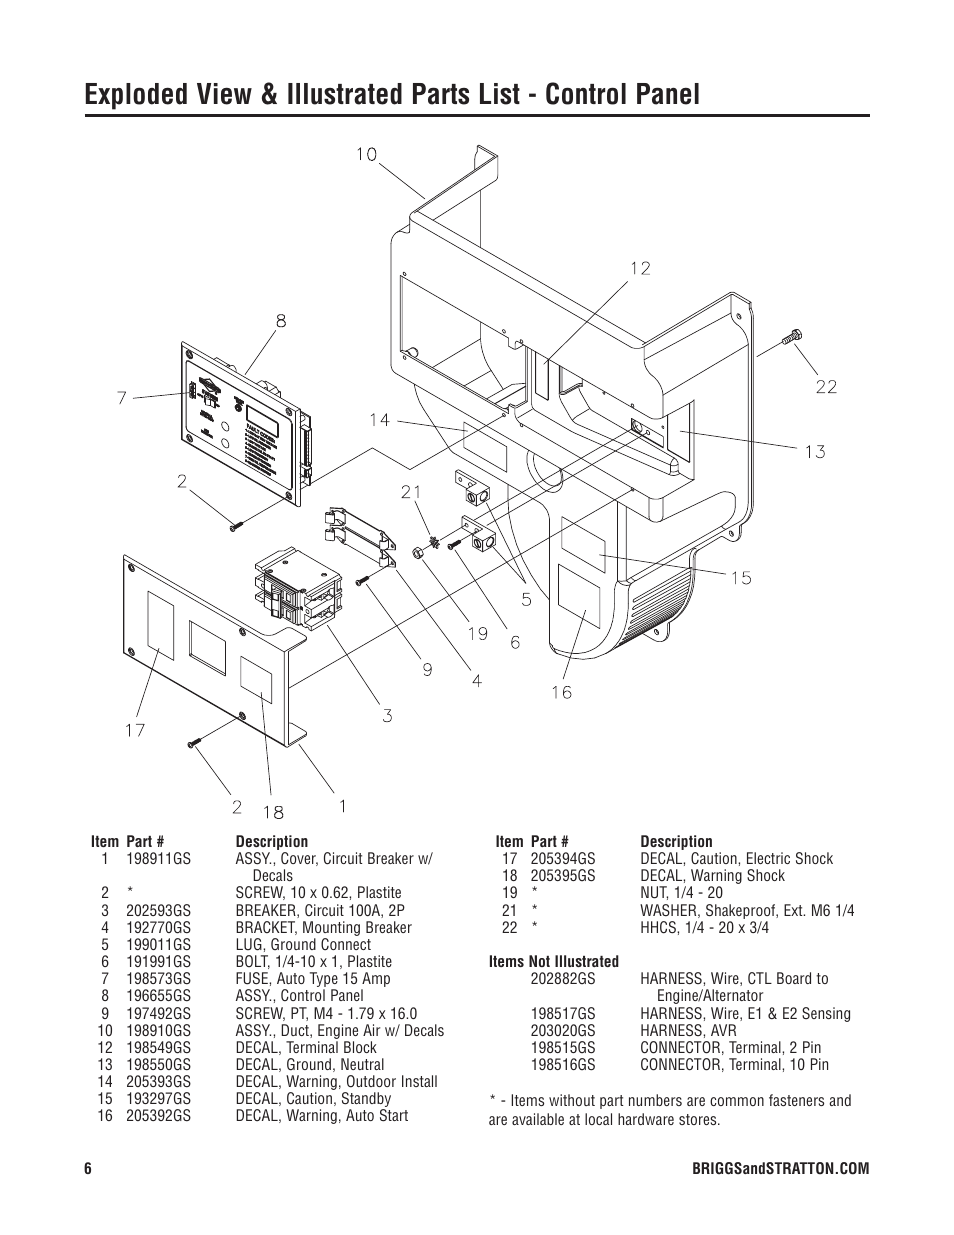 Briggs Stratton 40226 User Manual Page 6 7 10 0 Motor Wiring Diagram